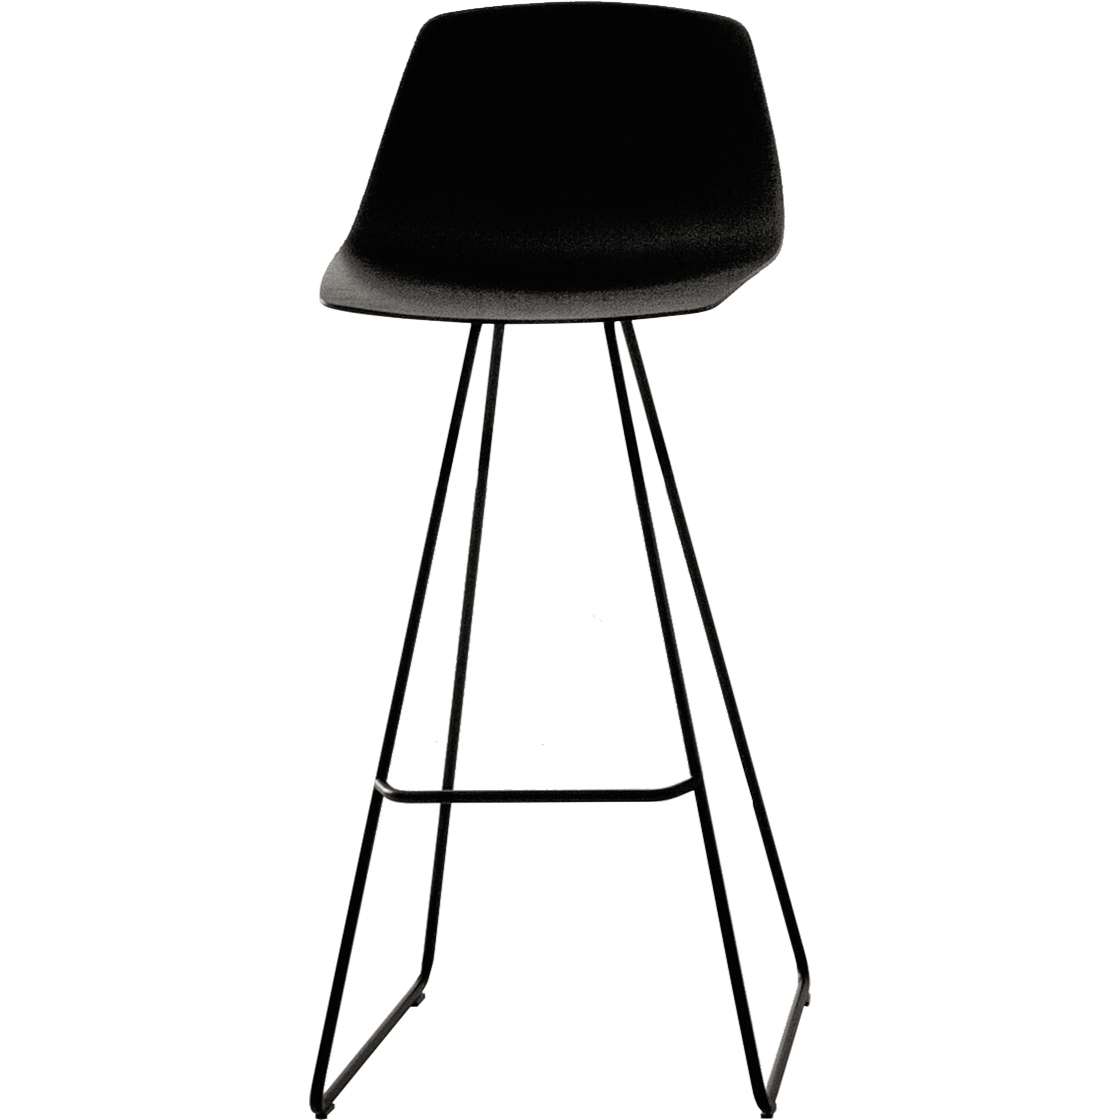 stool miunn with sled base 75cm by lapalma. Black Bedroom Furniture Sets. Home Design Ideas